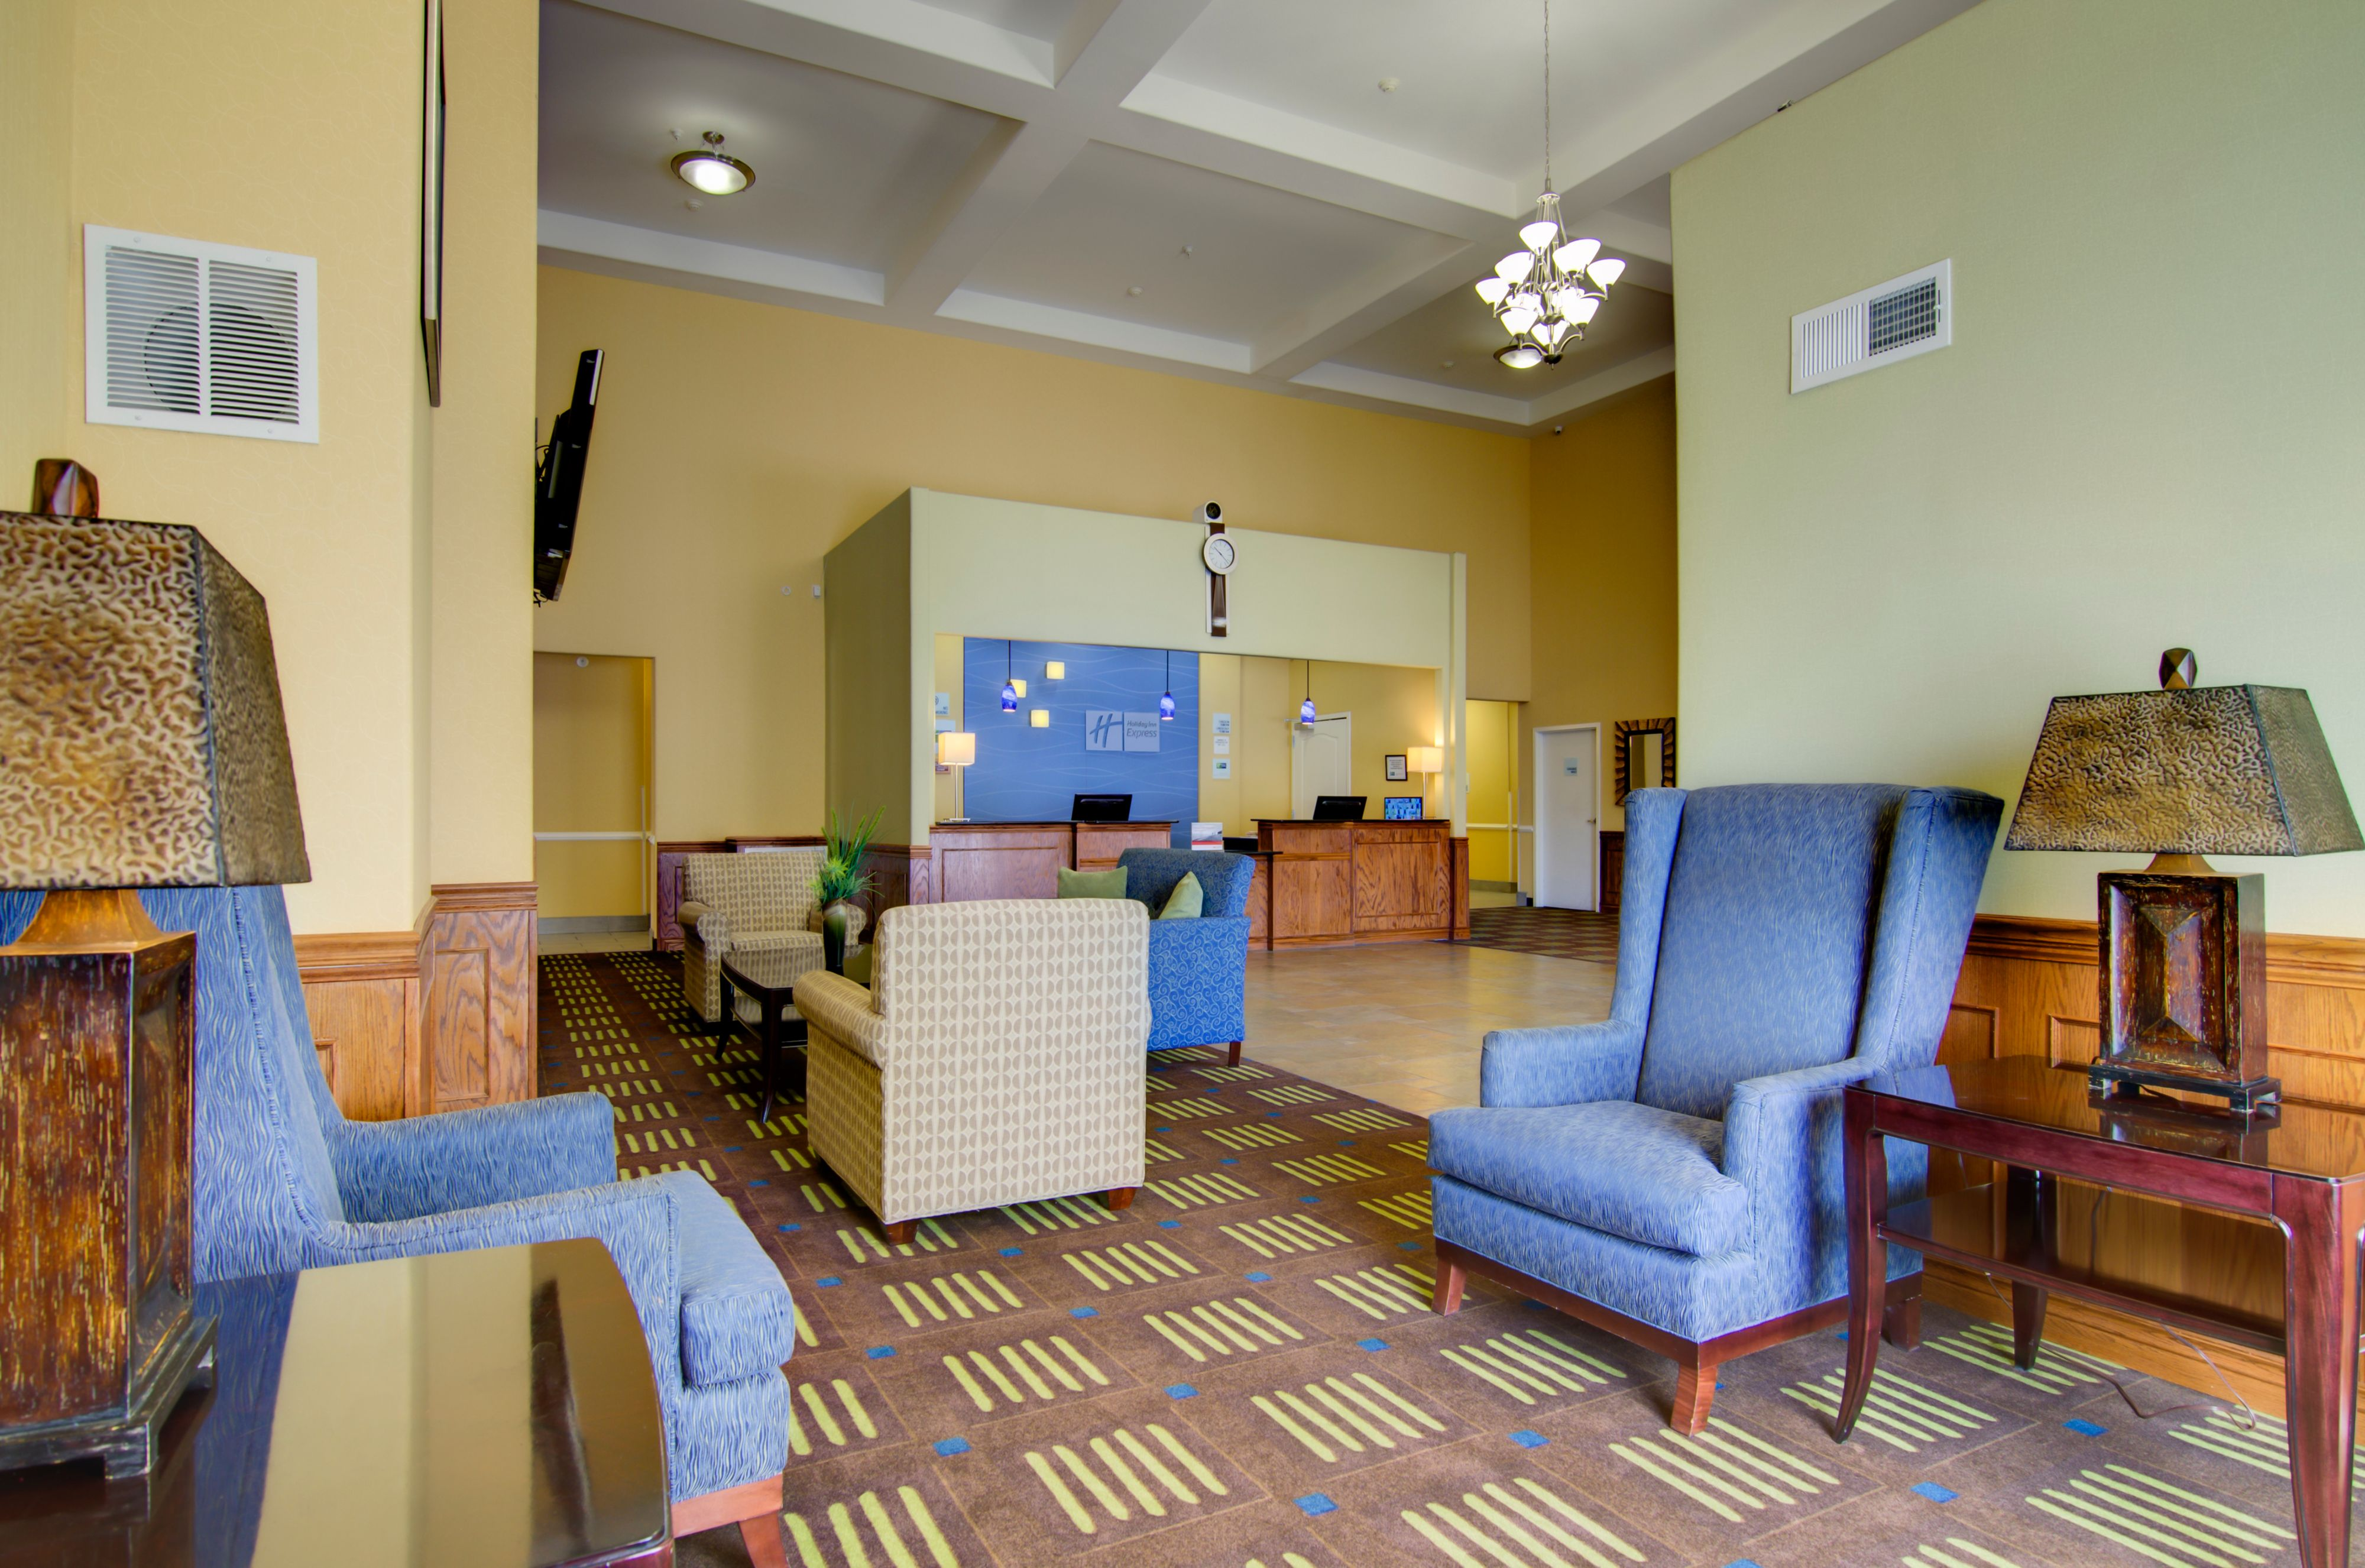 Holiday Inn Express & Suites Kansas City Sport Complex Area image 4